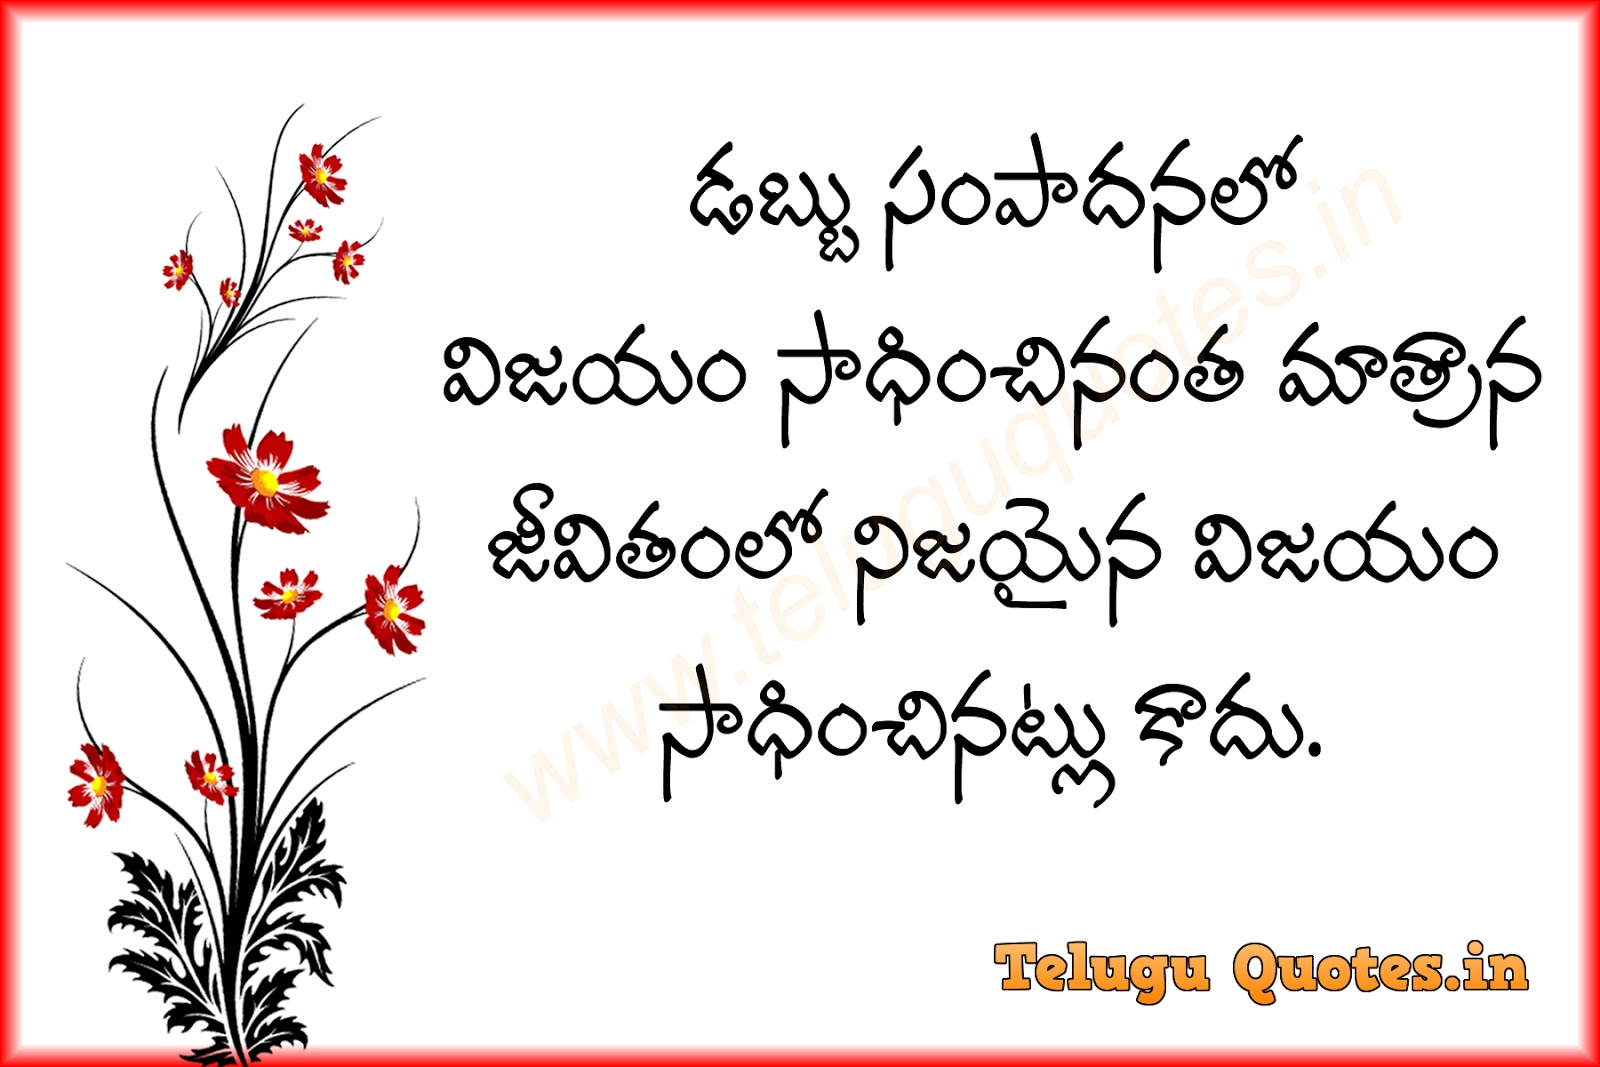 Love Friendship Quotes Life Motivational Quotations  Telugu Quotes.in